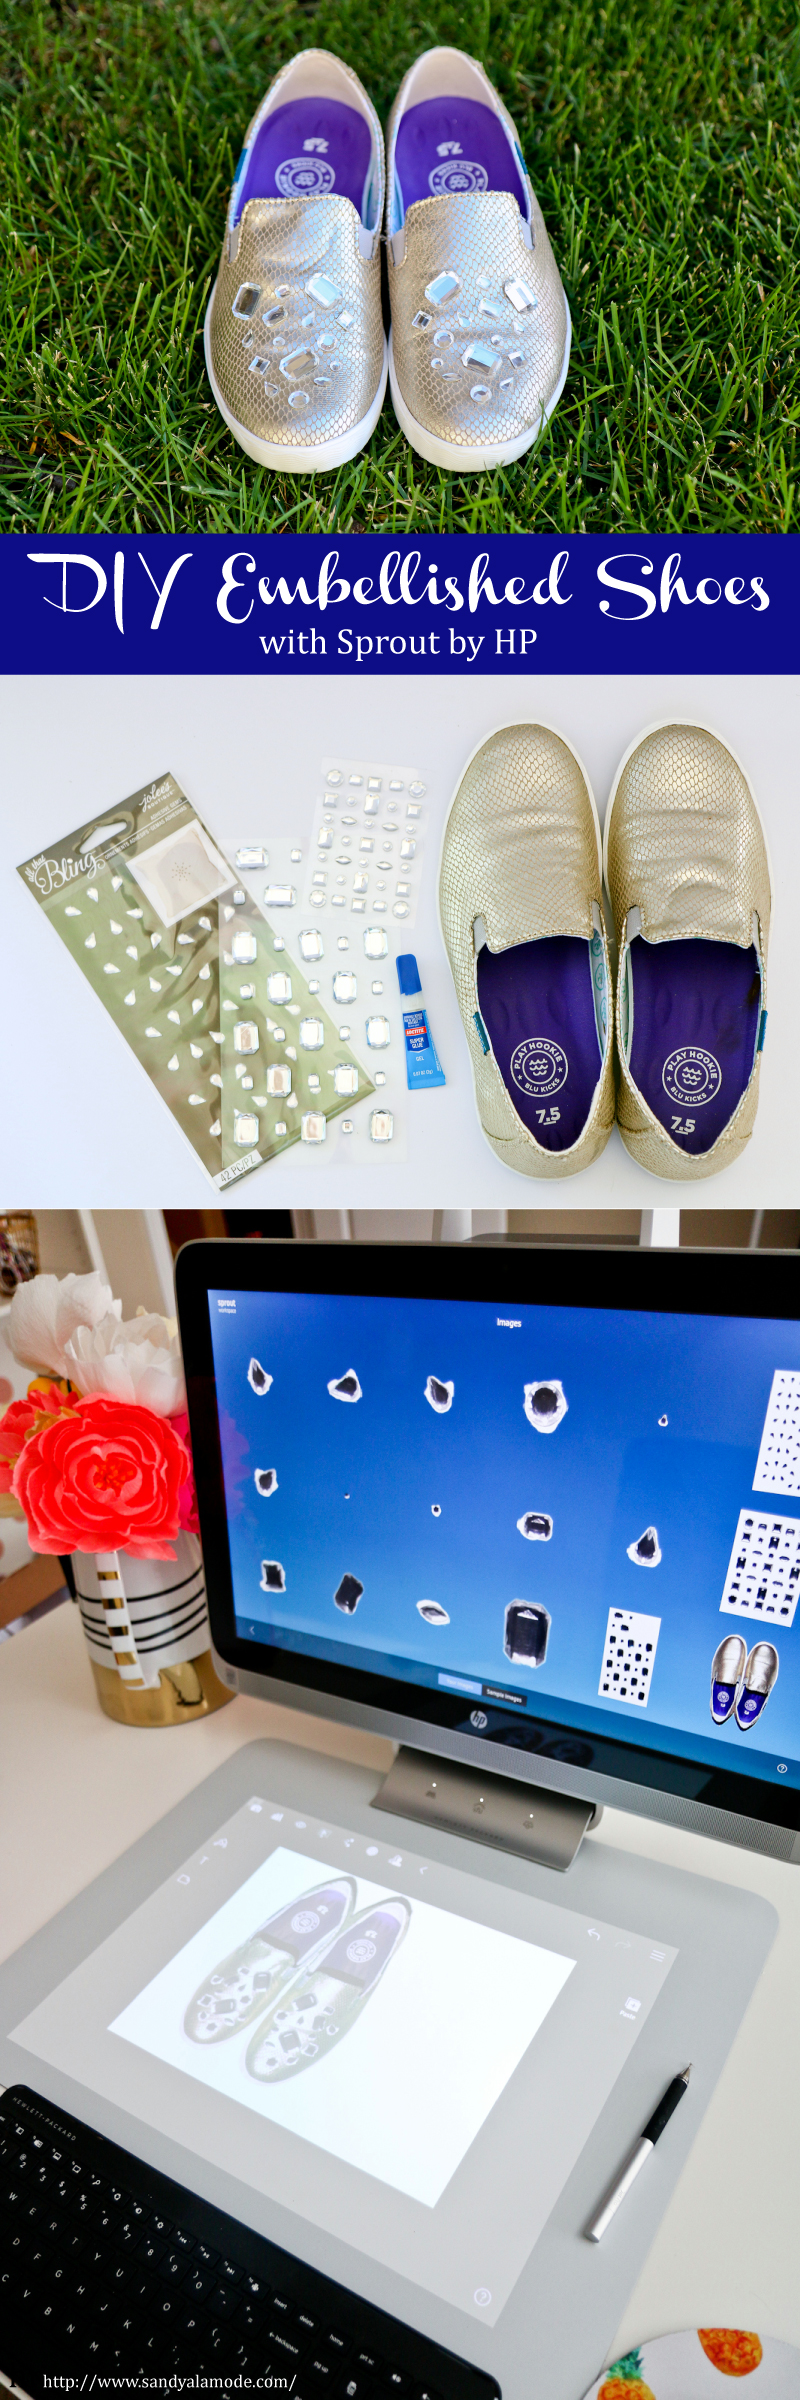 DIY-Embellished-Shoes-with-Sprout-by-HP